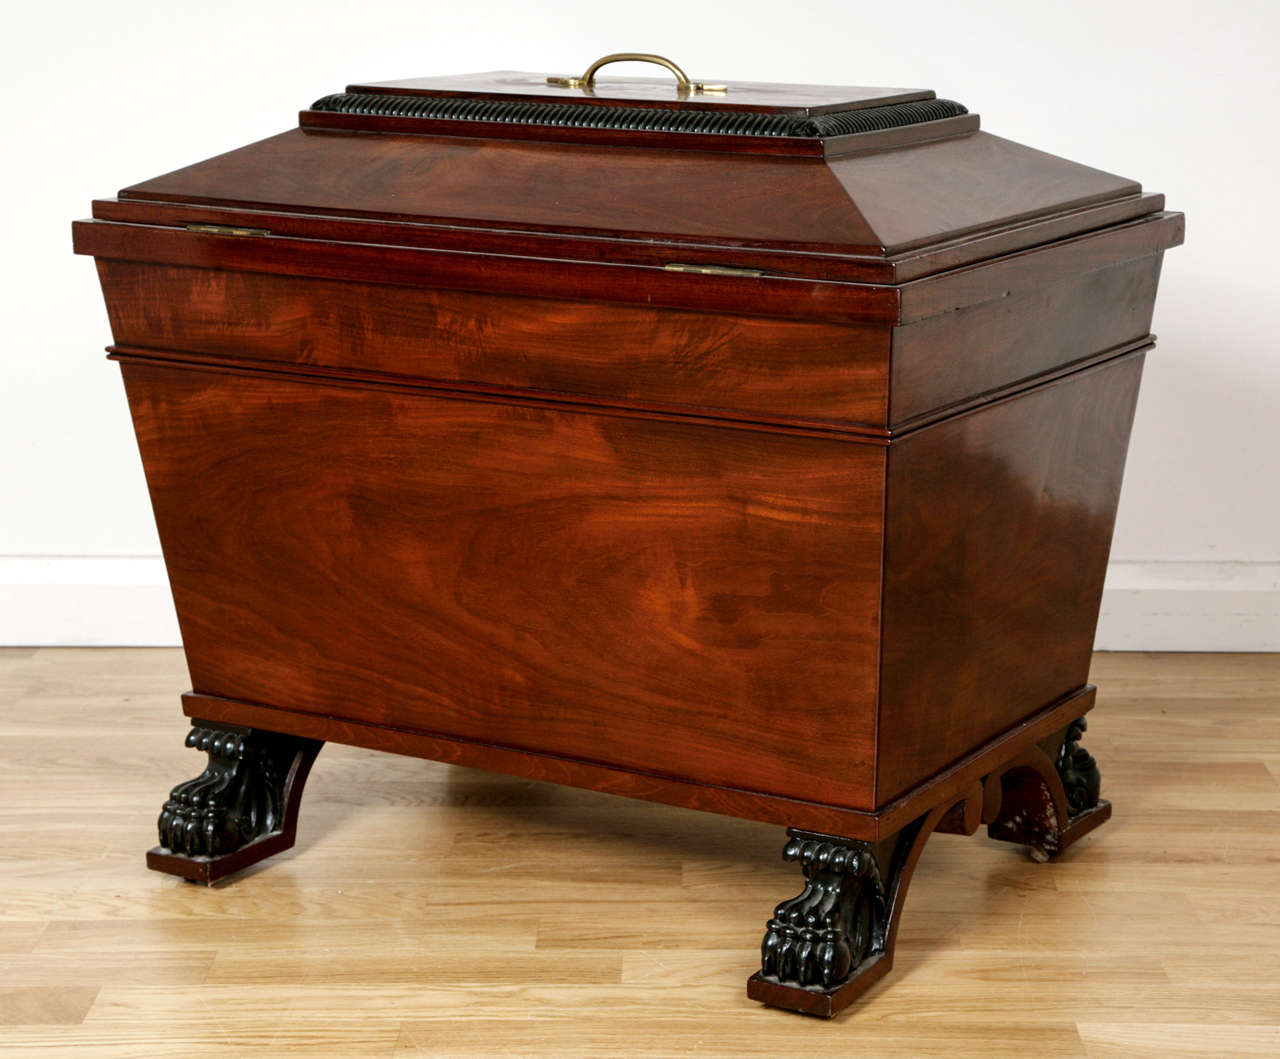 George IV Style Brass-Mounted Mahogany Wine Cooler 4